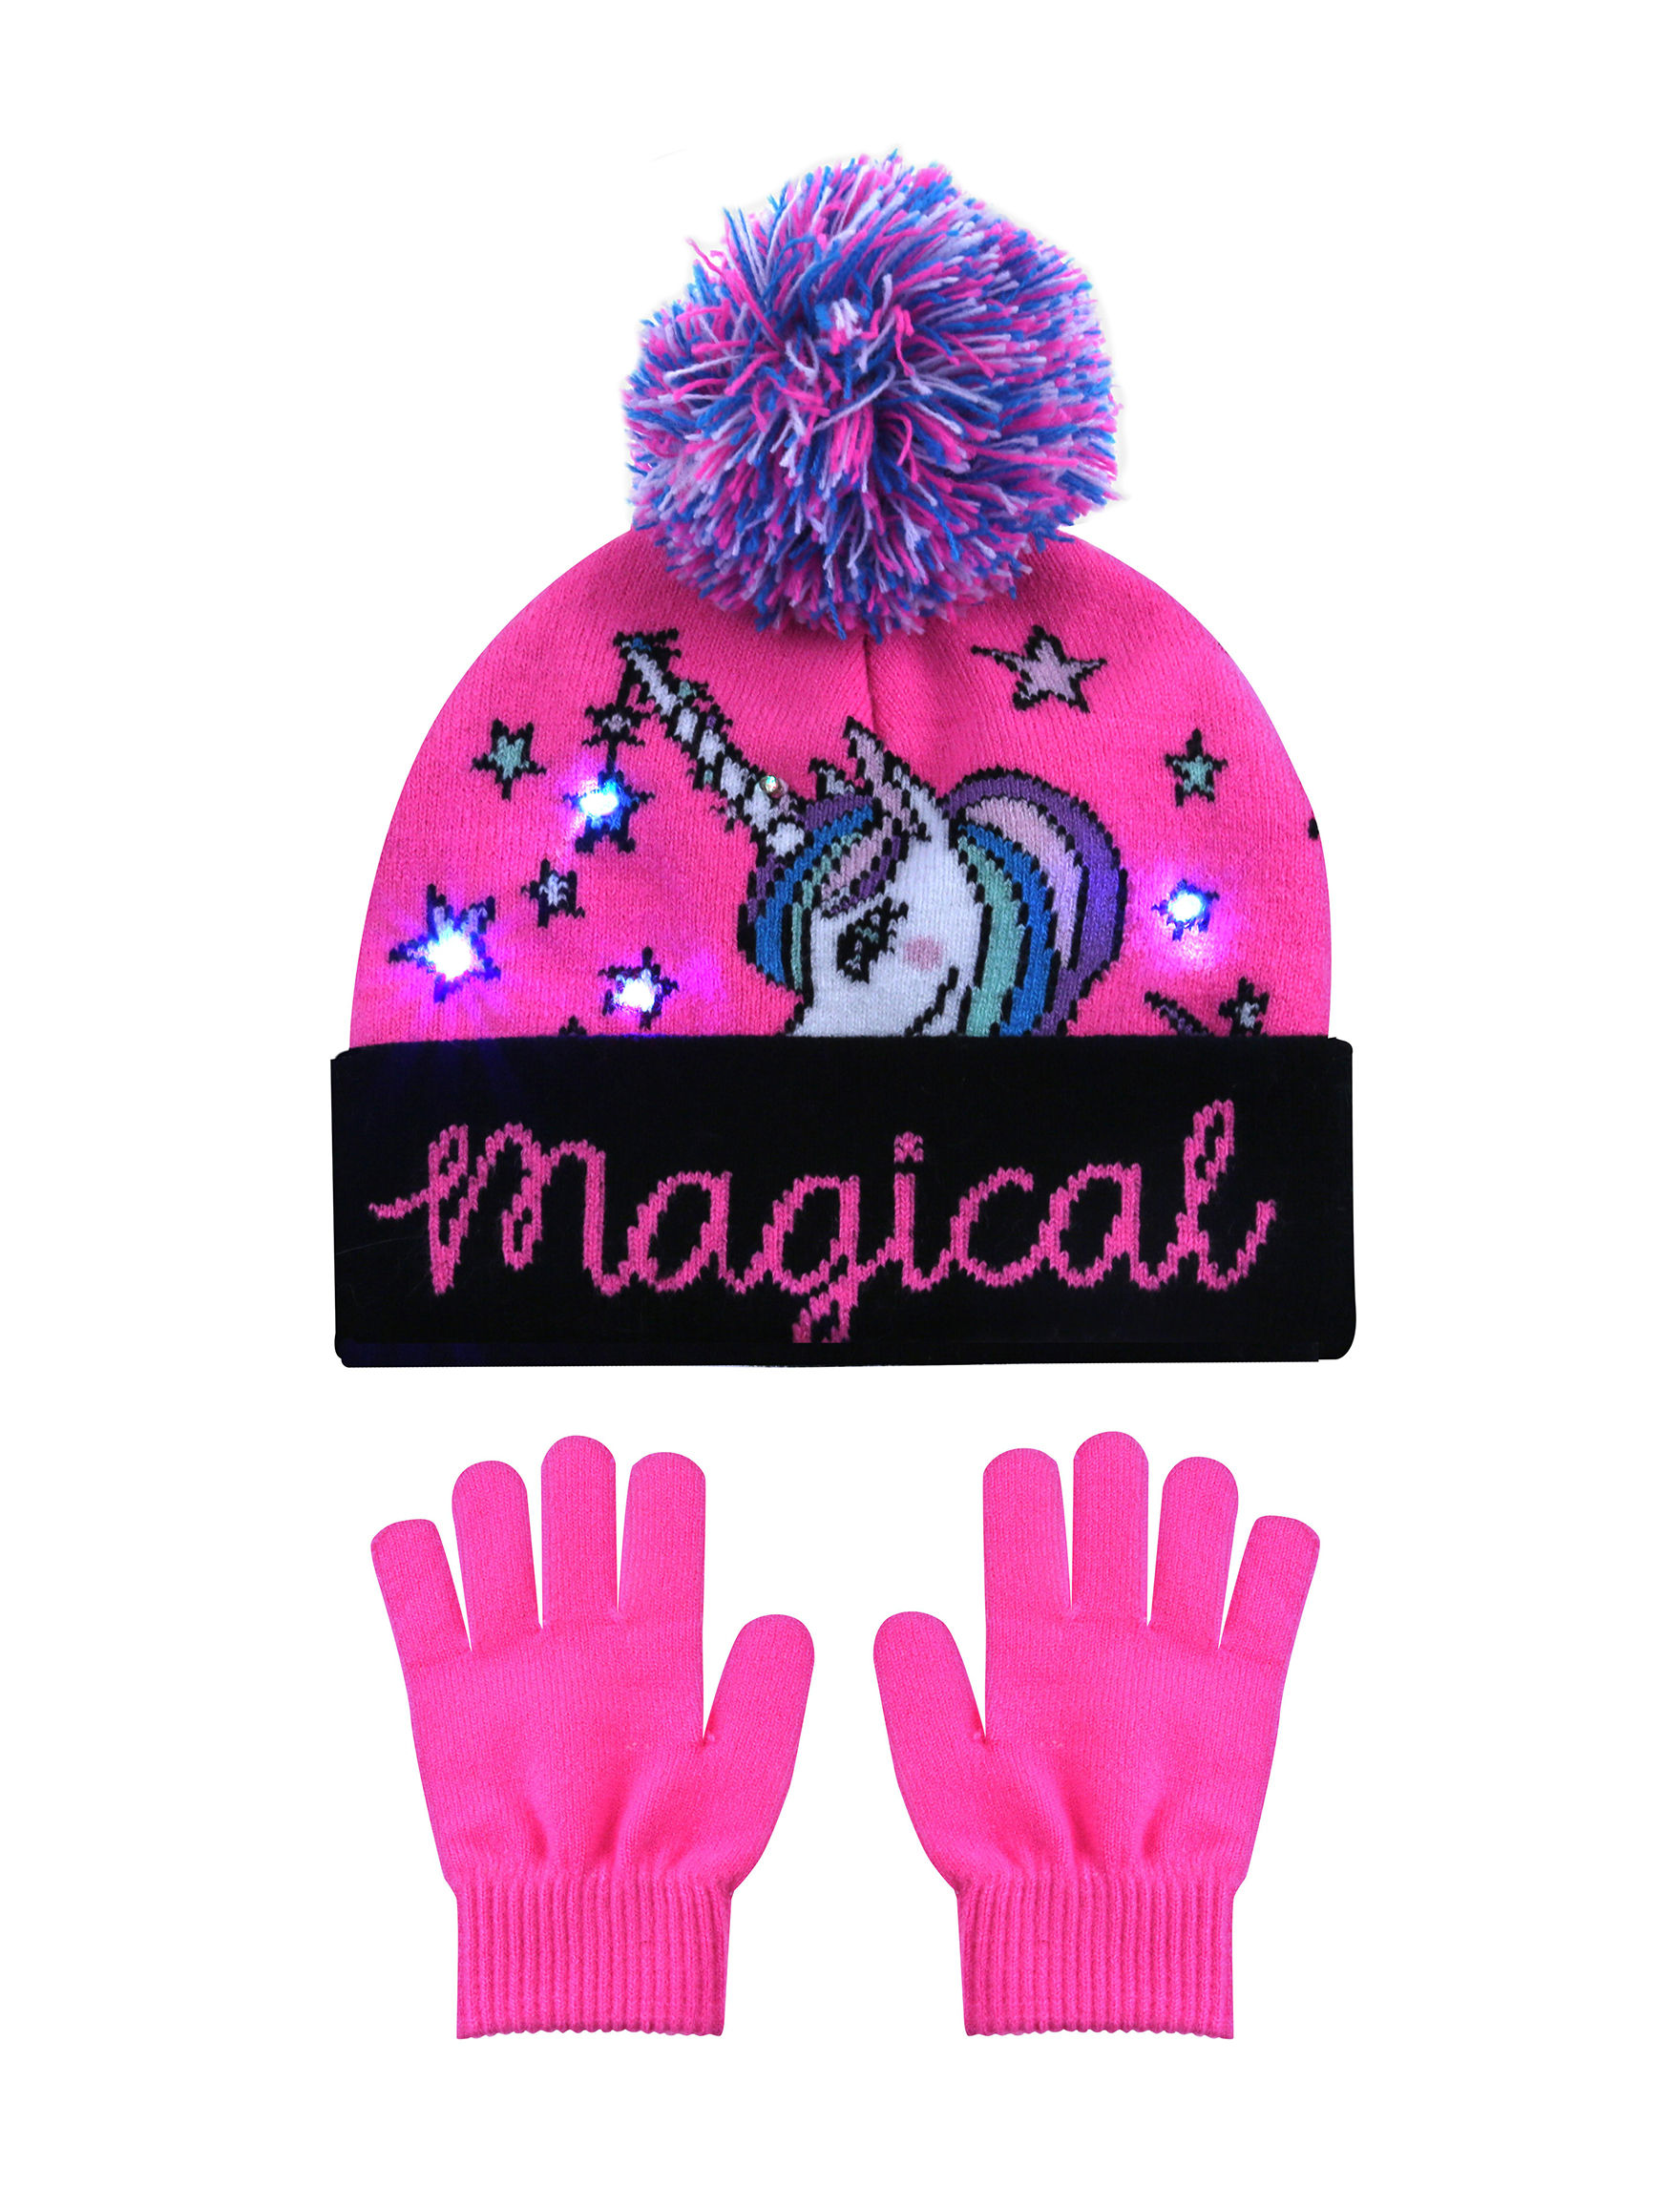 Capelli Pink Combo Hats, Gloves & Scarves